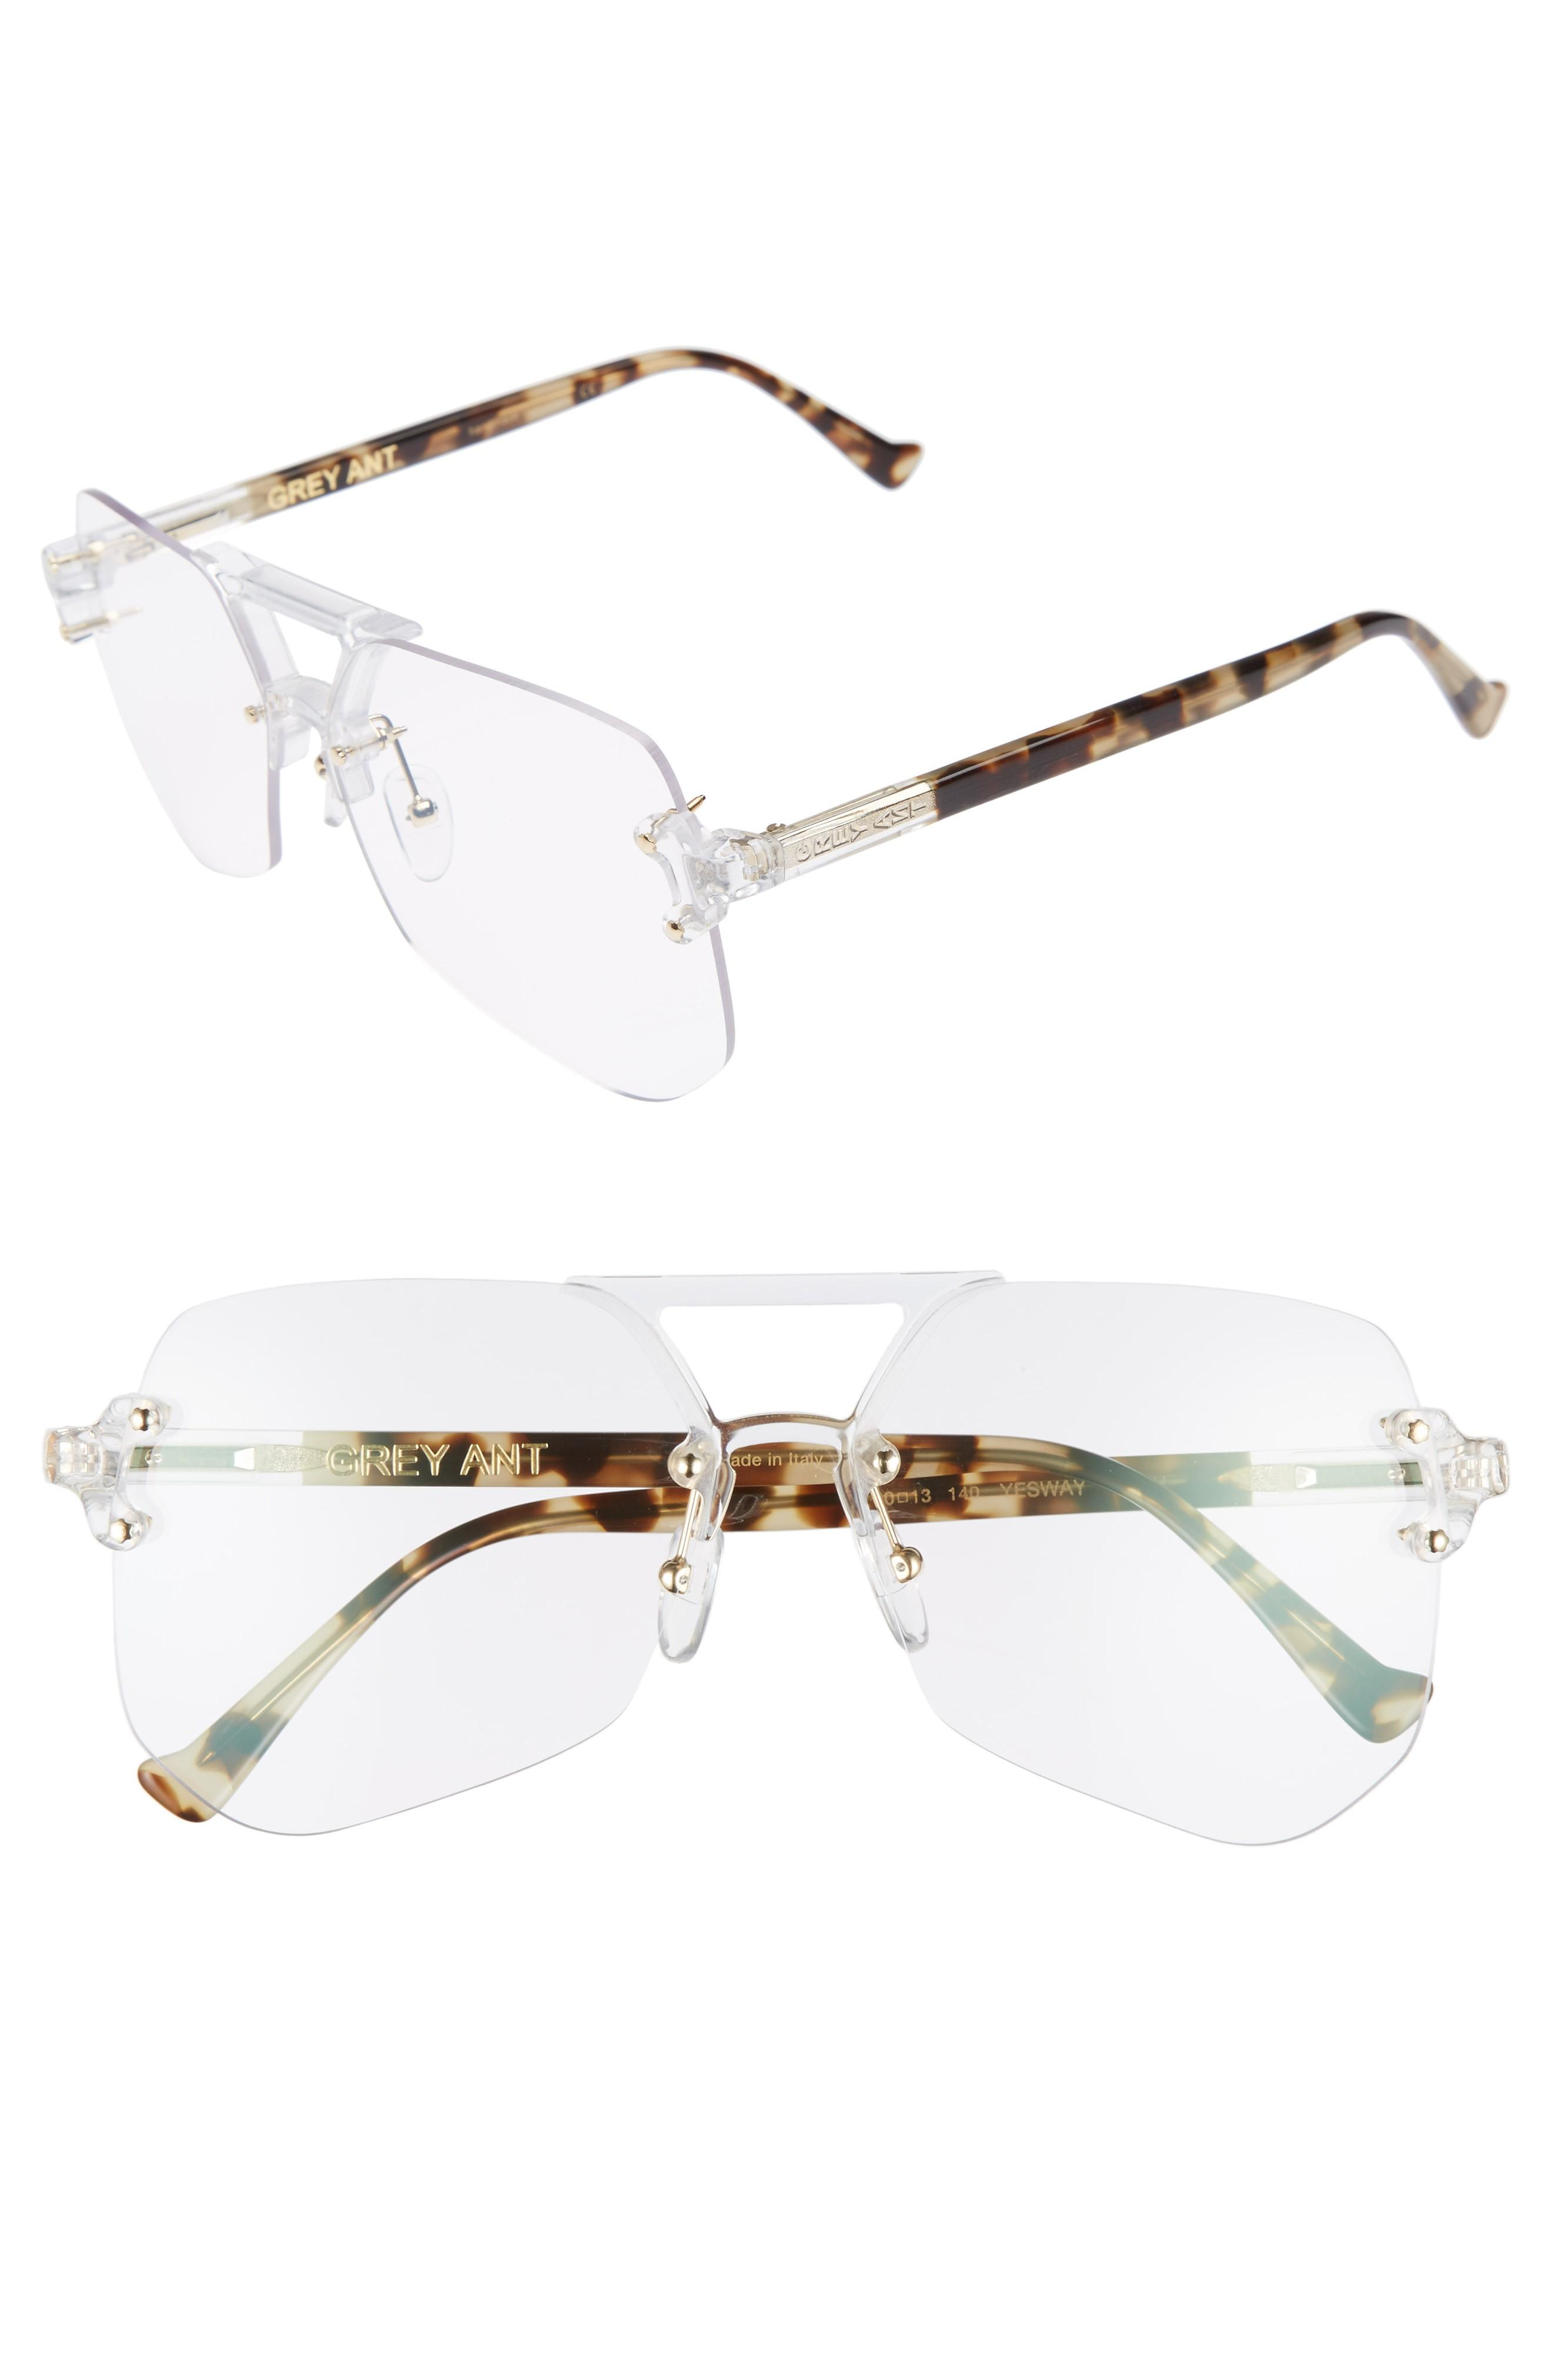 0f257aa6e4 Grey Ant Yesway 60Mm Optical Glasses In Gold   Tortoise